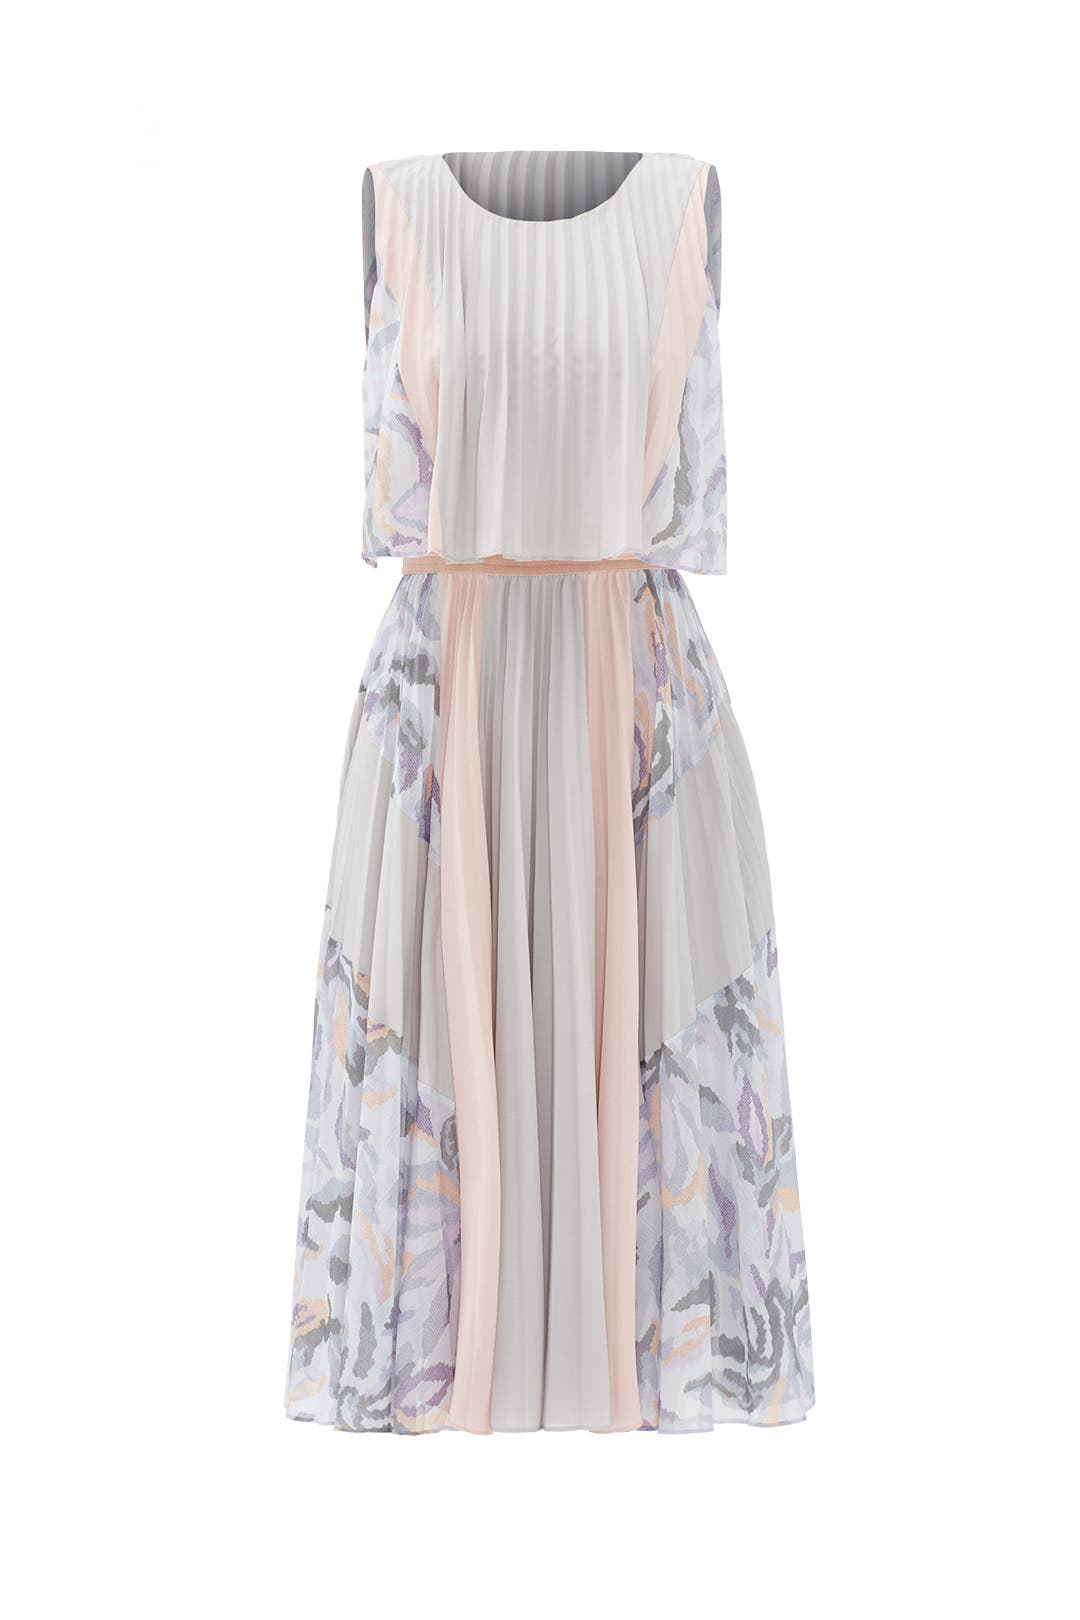 Ola Pleated Dress by BCBGMAXAZRIA for $45 - $65 | Rent the Runway